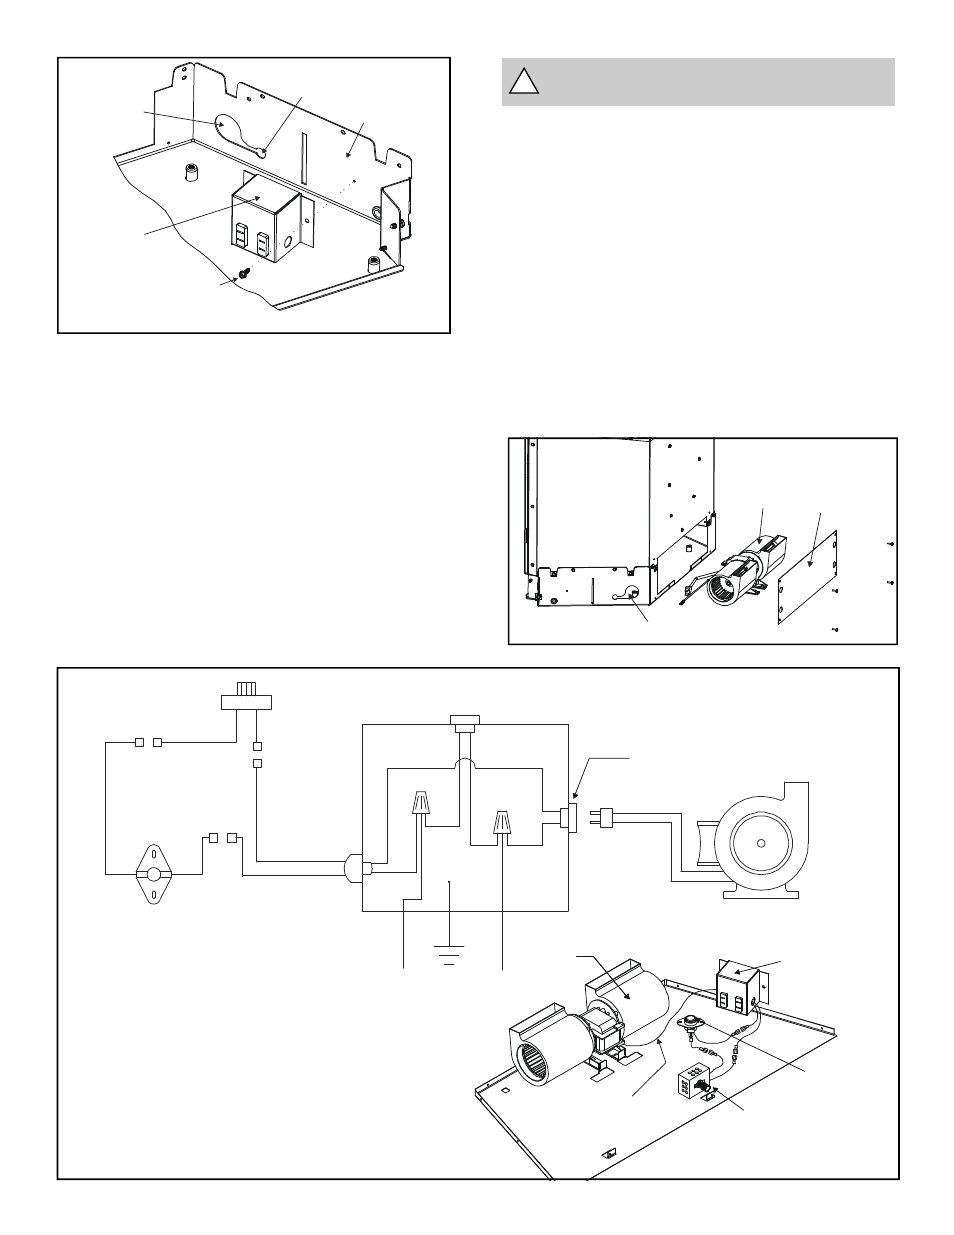 medium resolution of figure 10 fan wiring diagram warning must use the cord supplied with the j box figure 11 heat glo fireplace heat n glo fb in user manual page 20